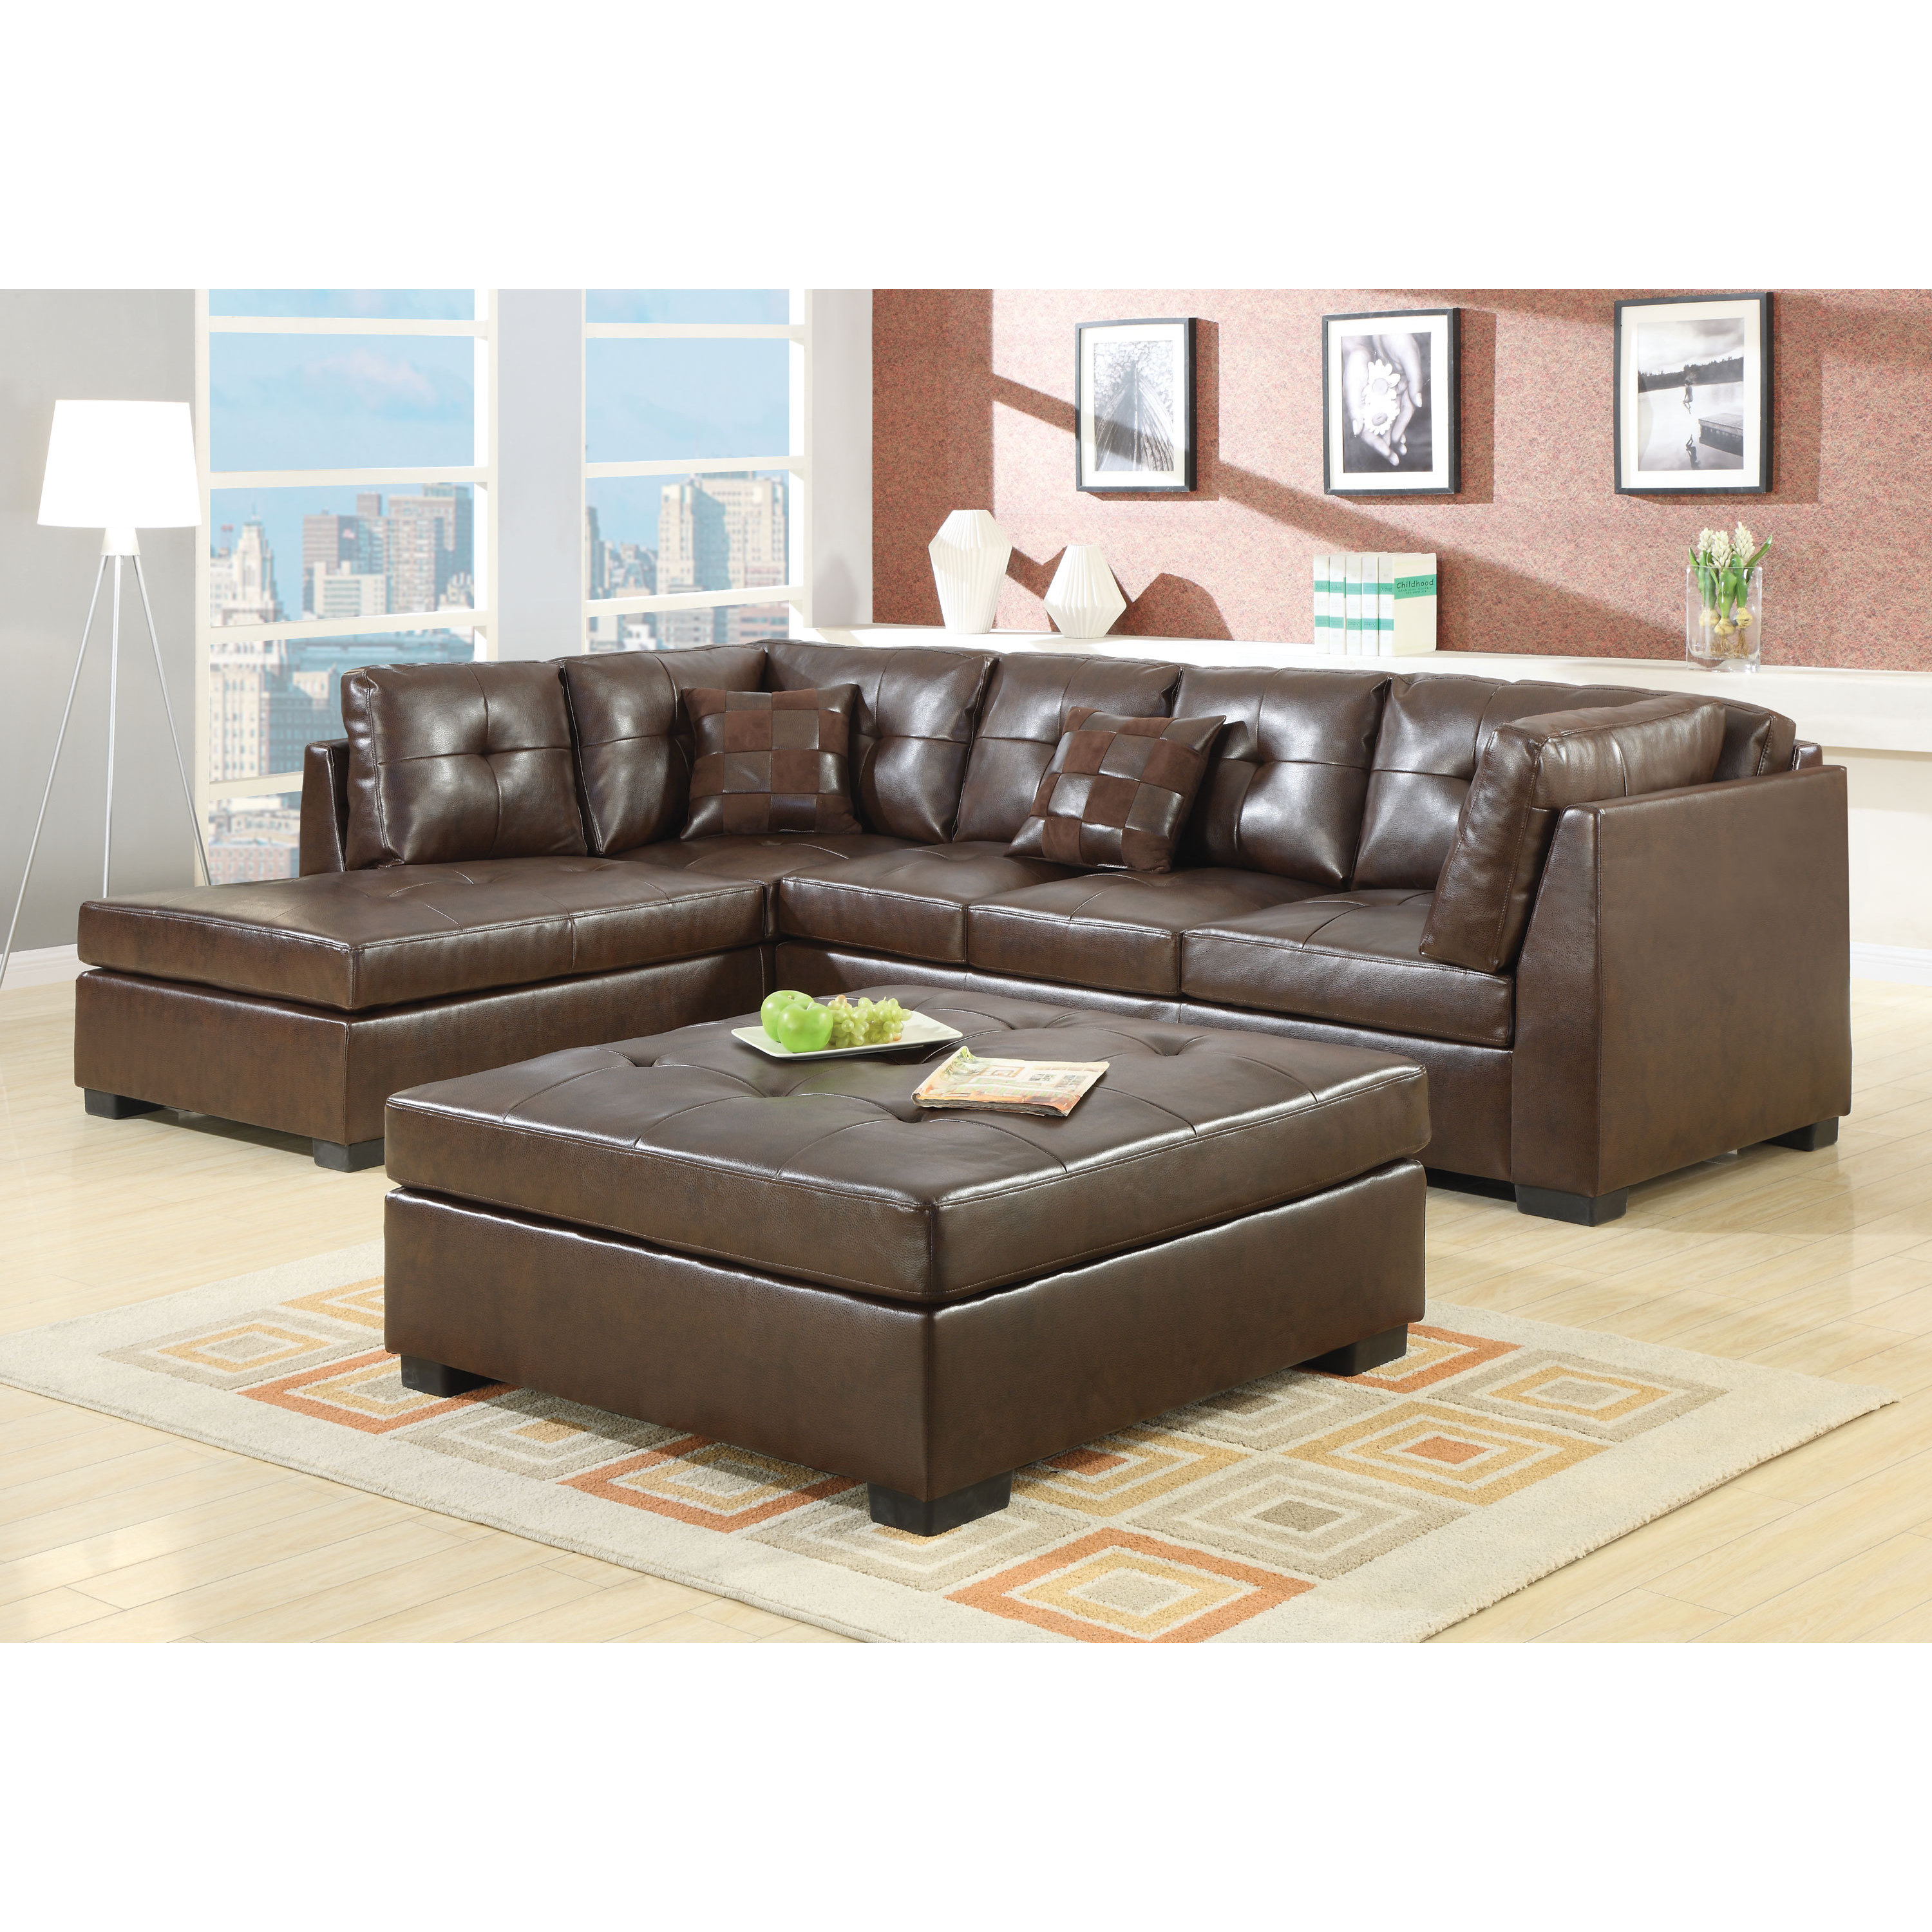 Astounding Coaster Company Brown Leather Sectional 109 X 75 50 X 35 50 Machost Co Dining Chair Design Ideas Machostcouk